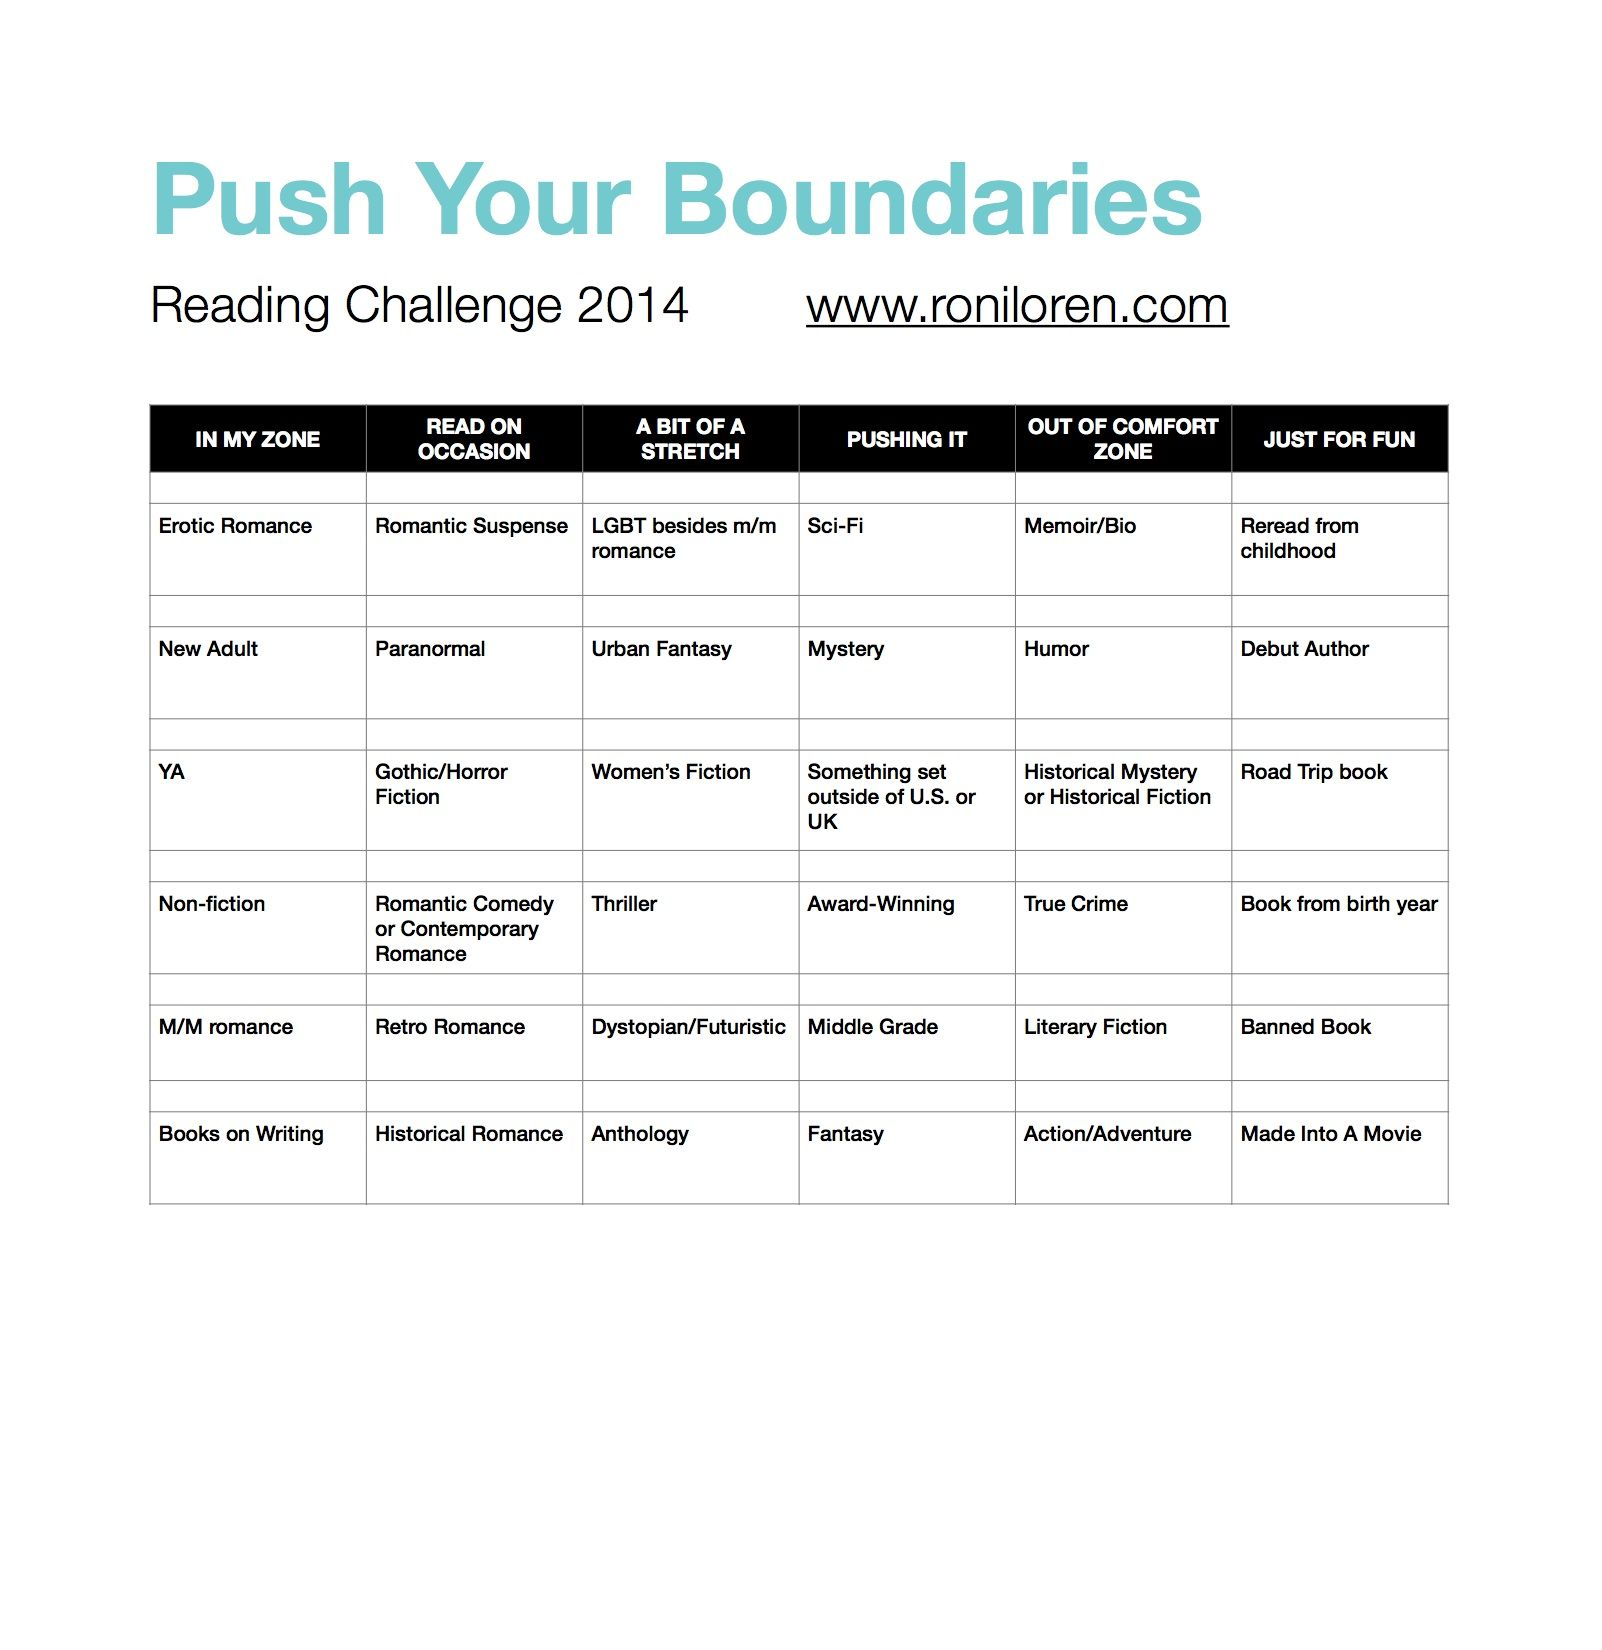 The Push Your Boundaries Reading Challenge 2014 Reading